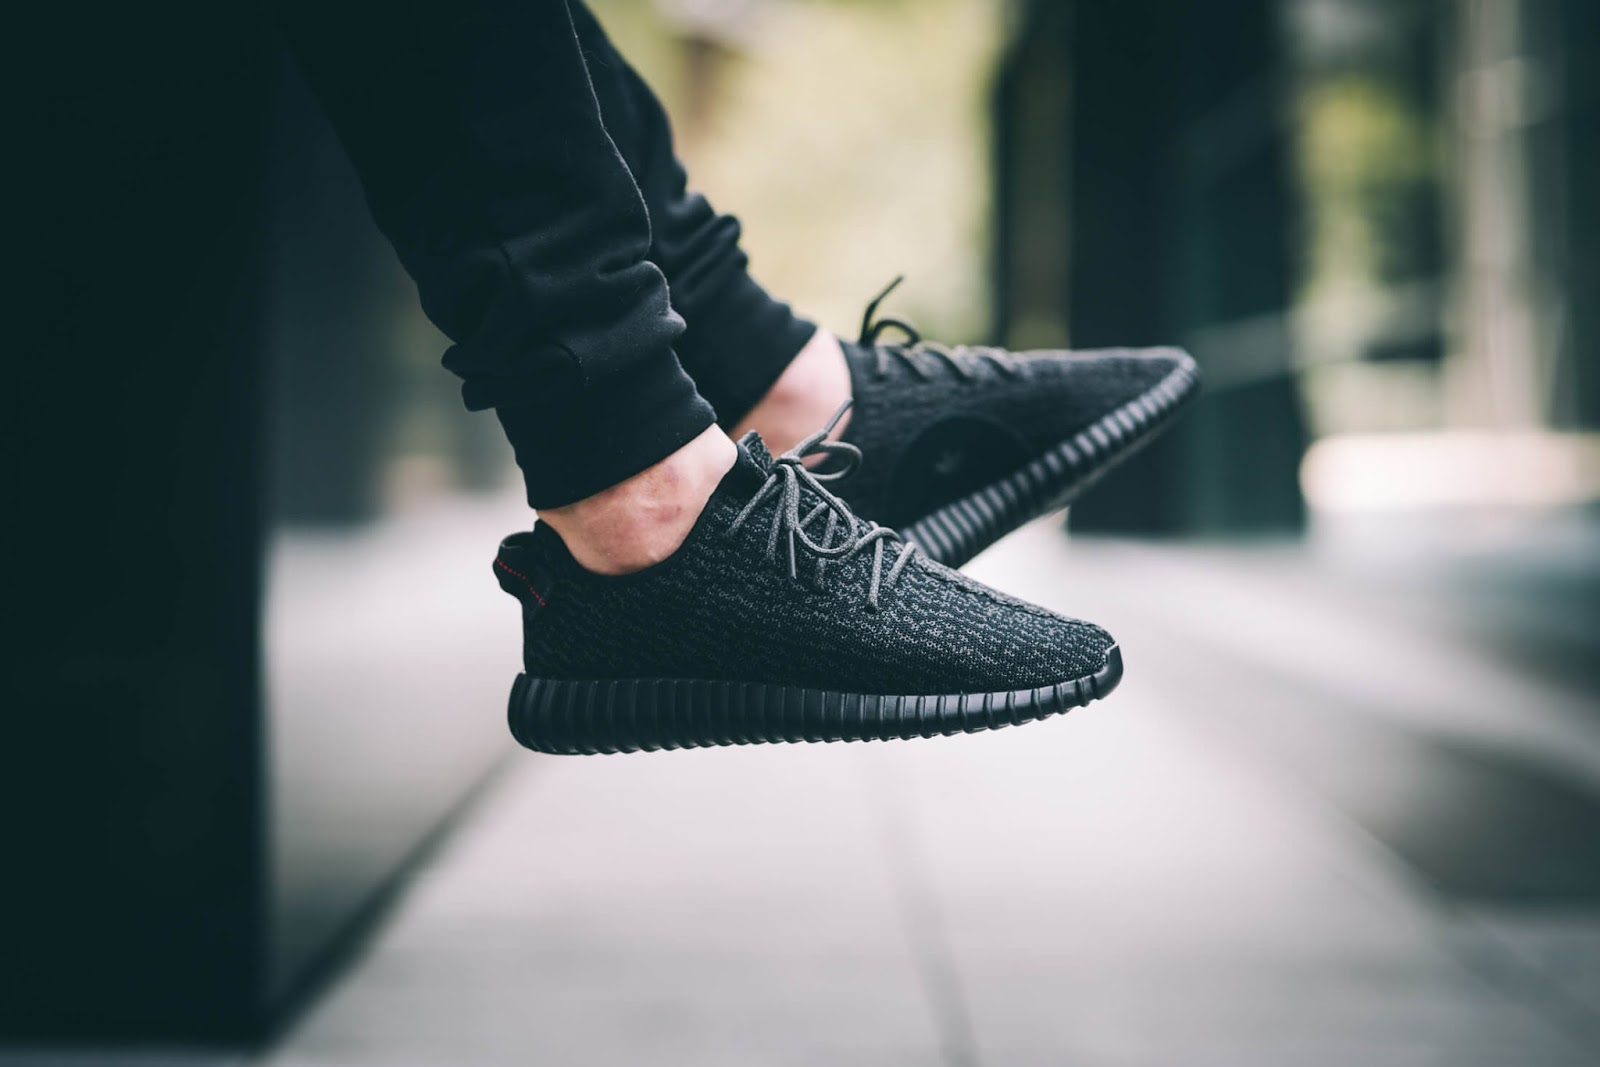 Adidas Yeezy Boost 350 Chile